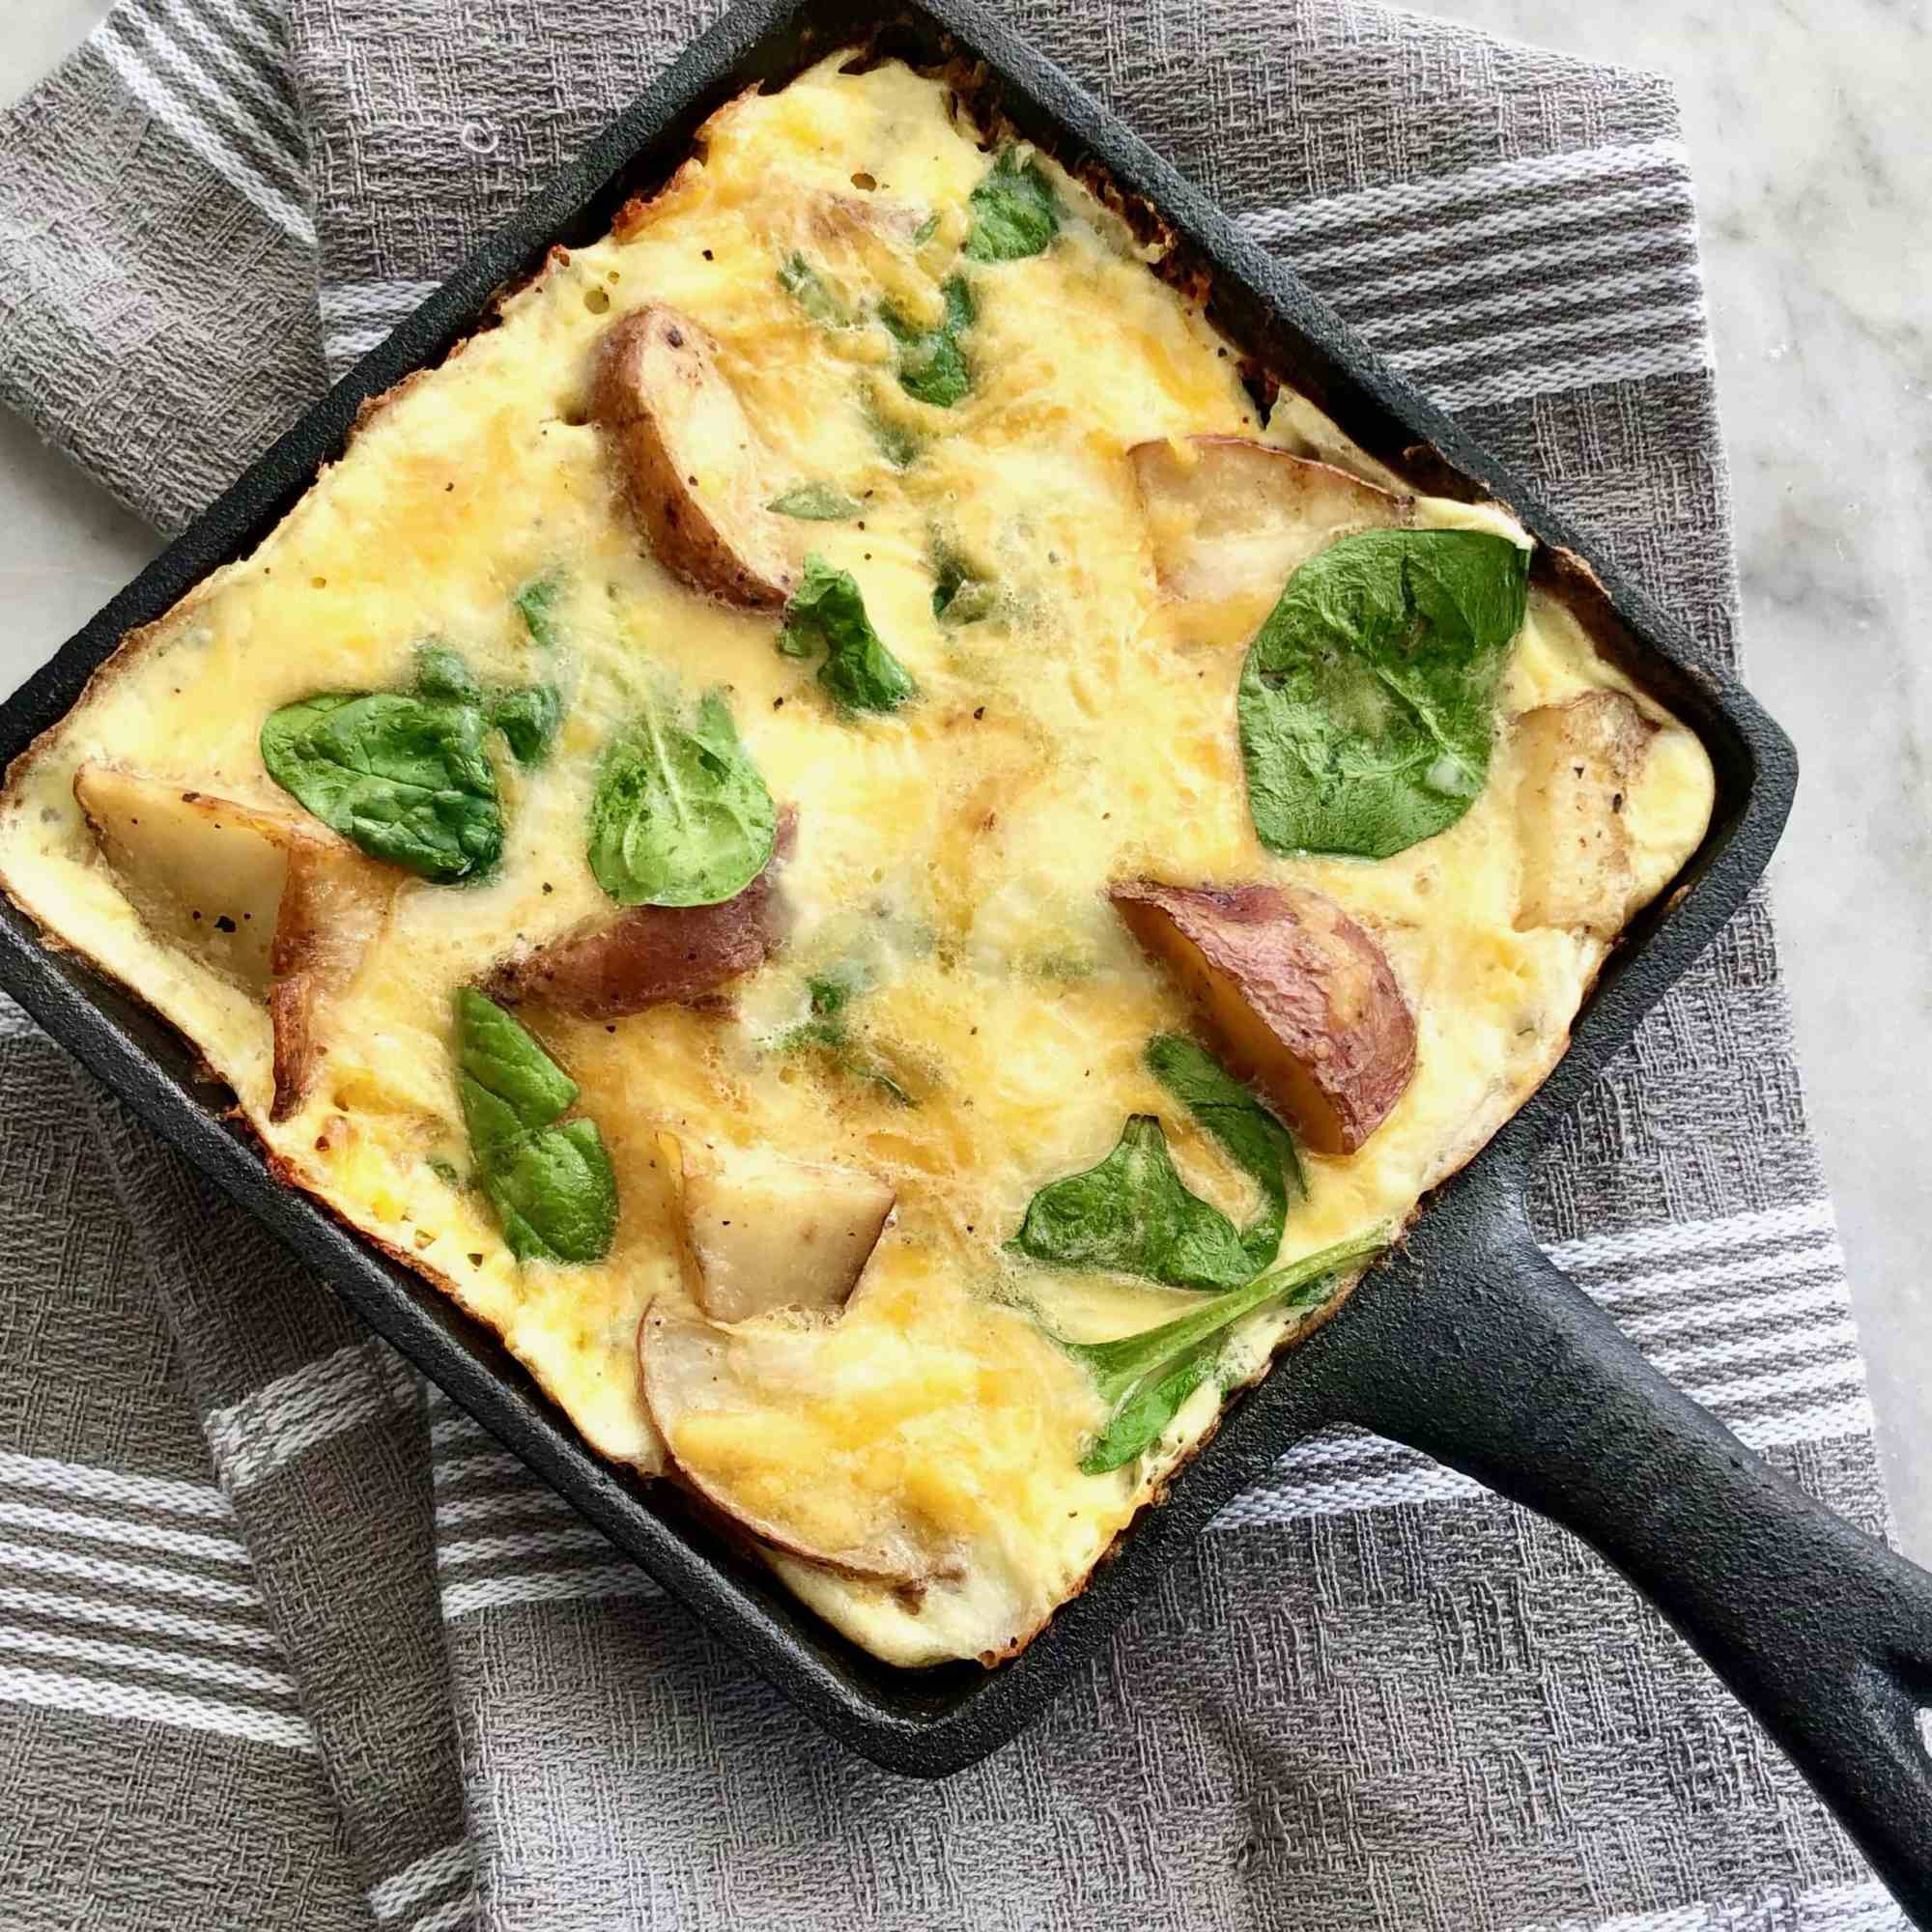 quiche with potatoes and spinach in a cast iron skillet.